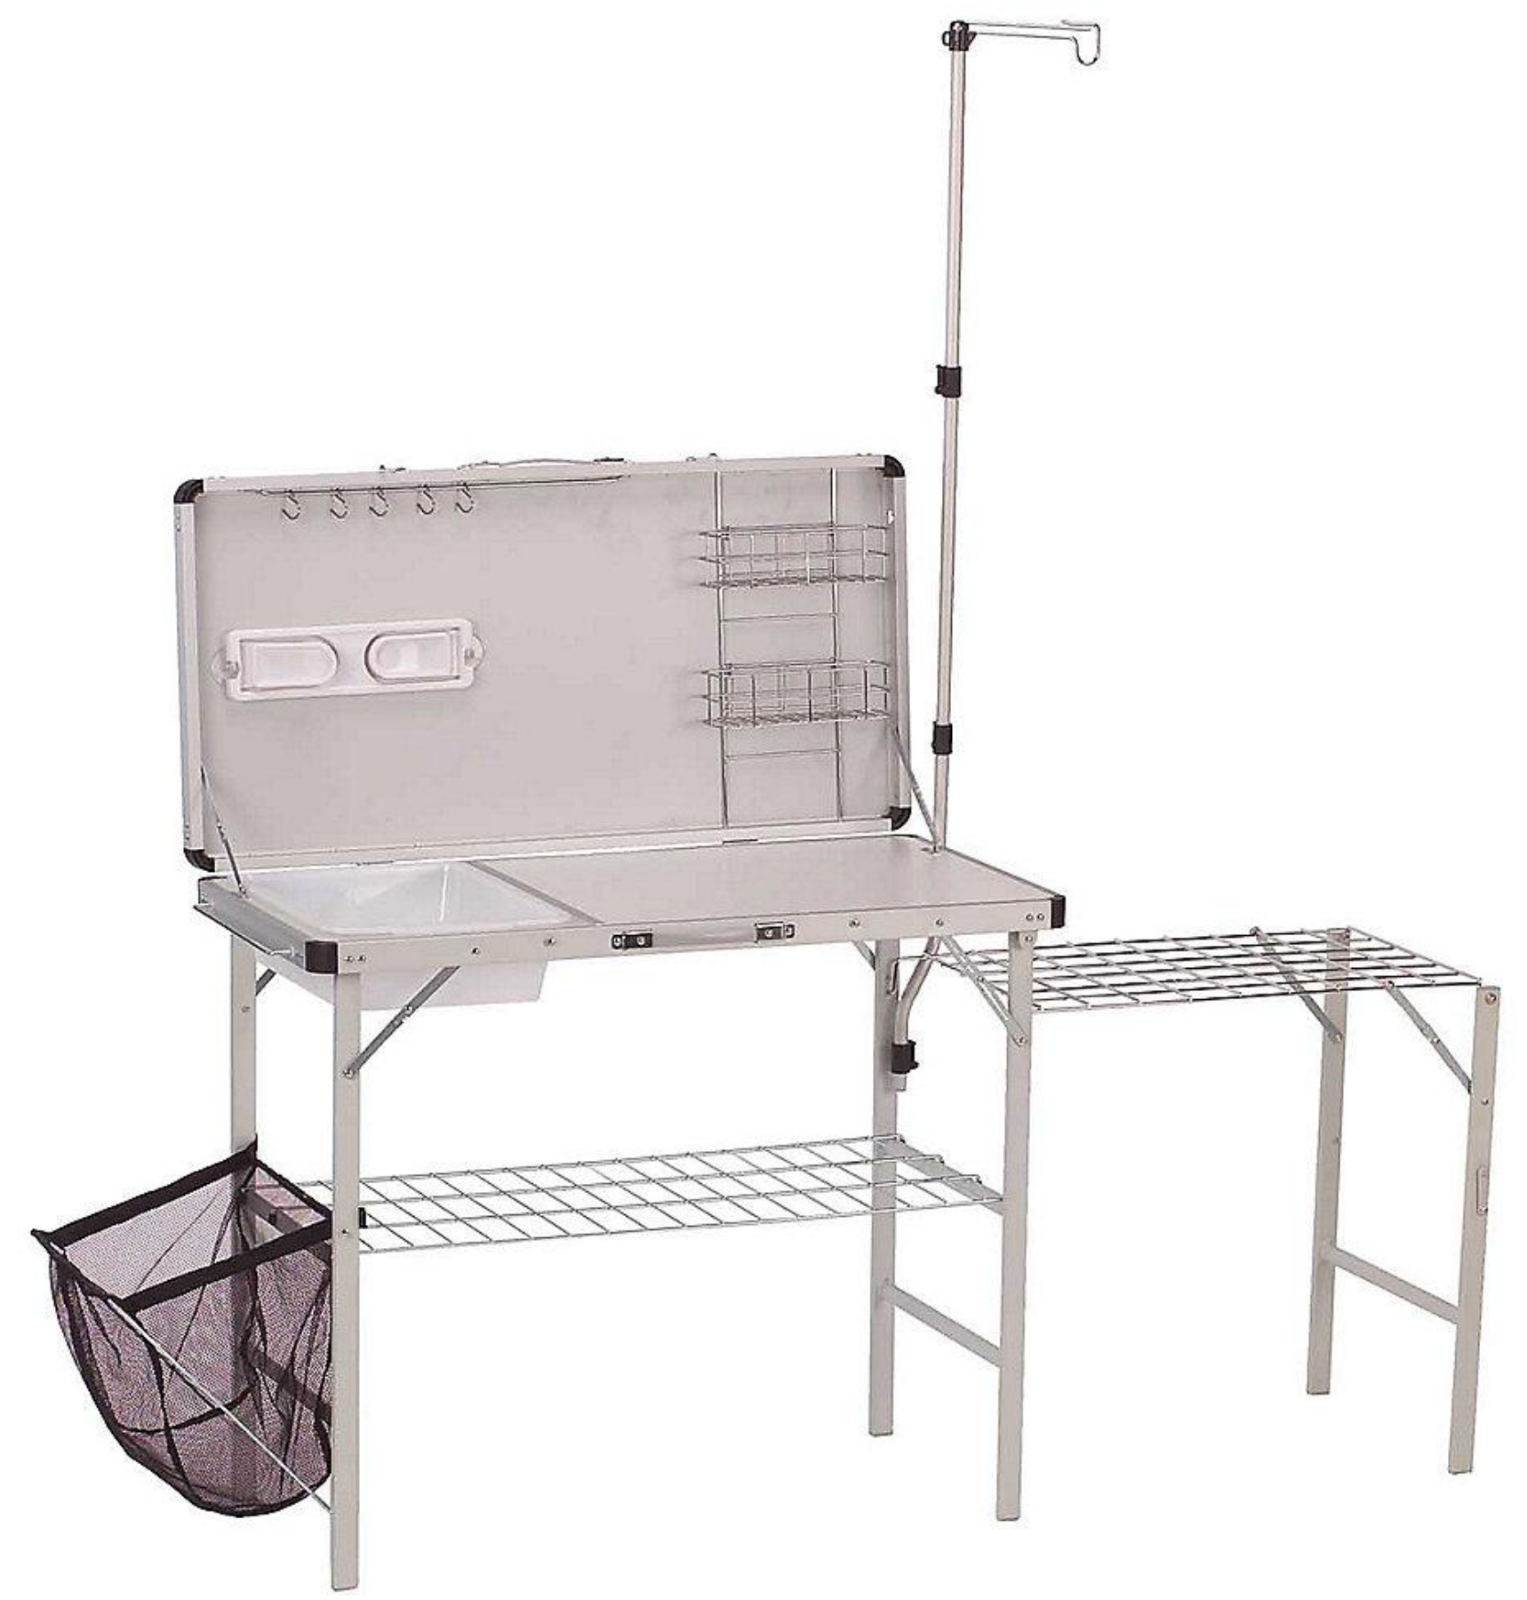 Portable Camping Outdoor Kitchen Prep Sink Table Organizer Surface Stand Coleman